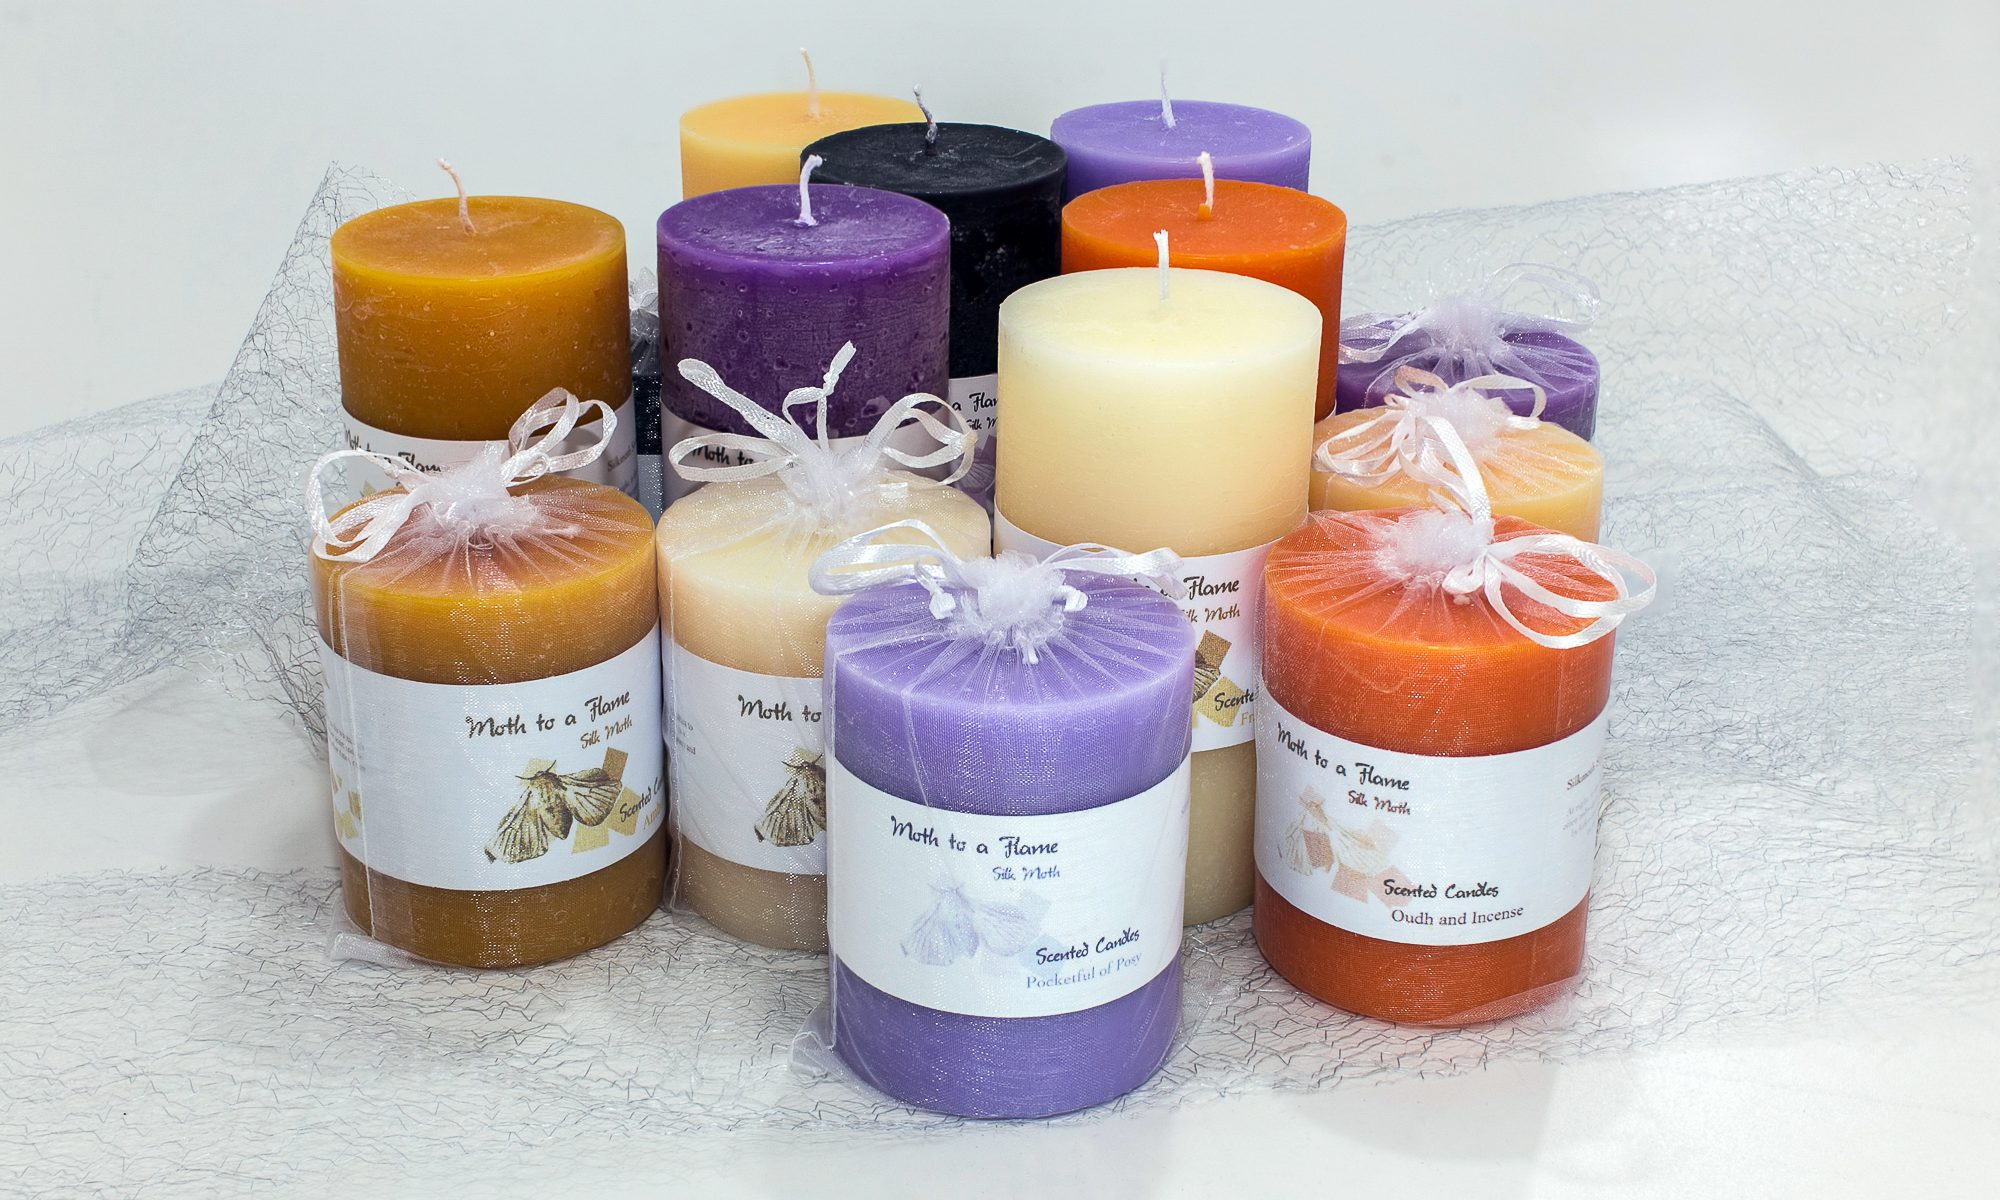 scented candles, hand made, kilkenny, ireland